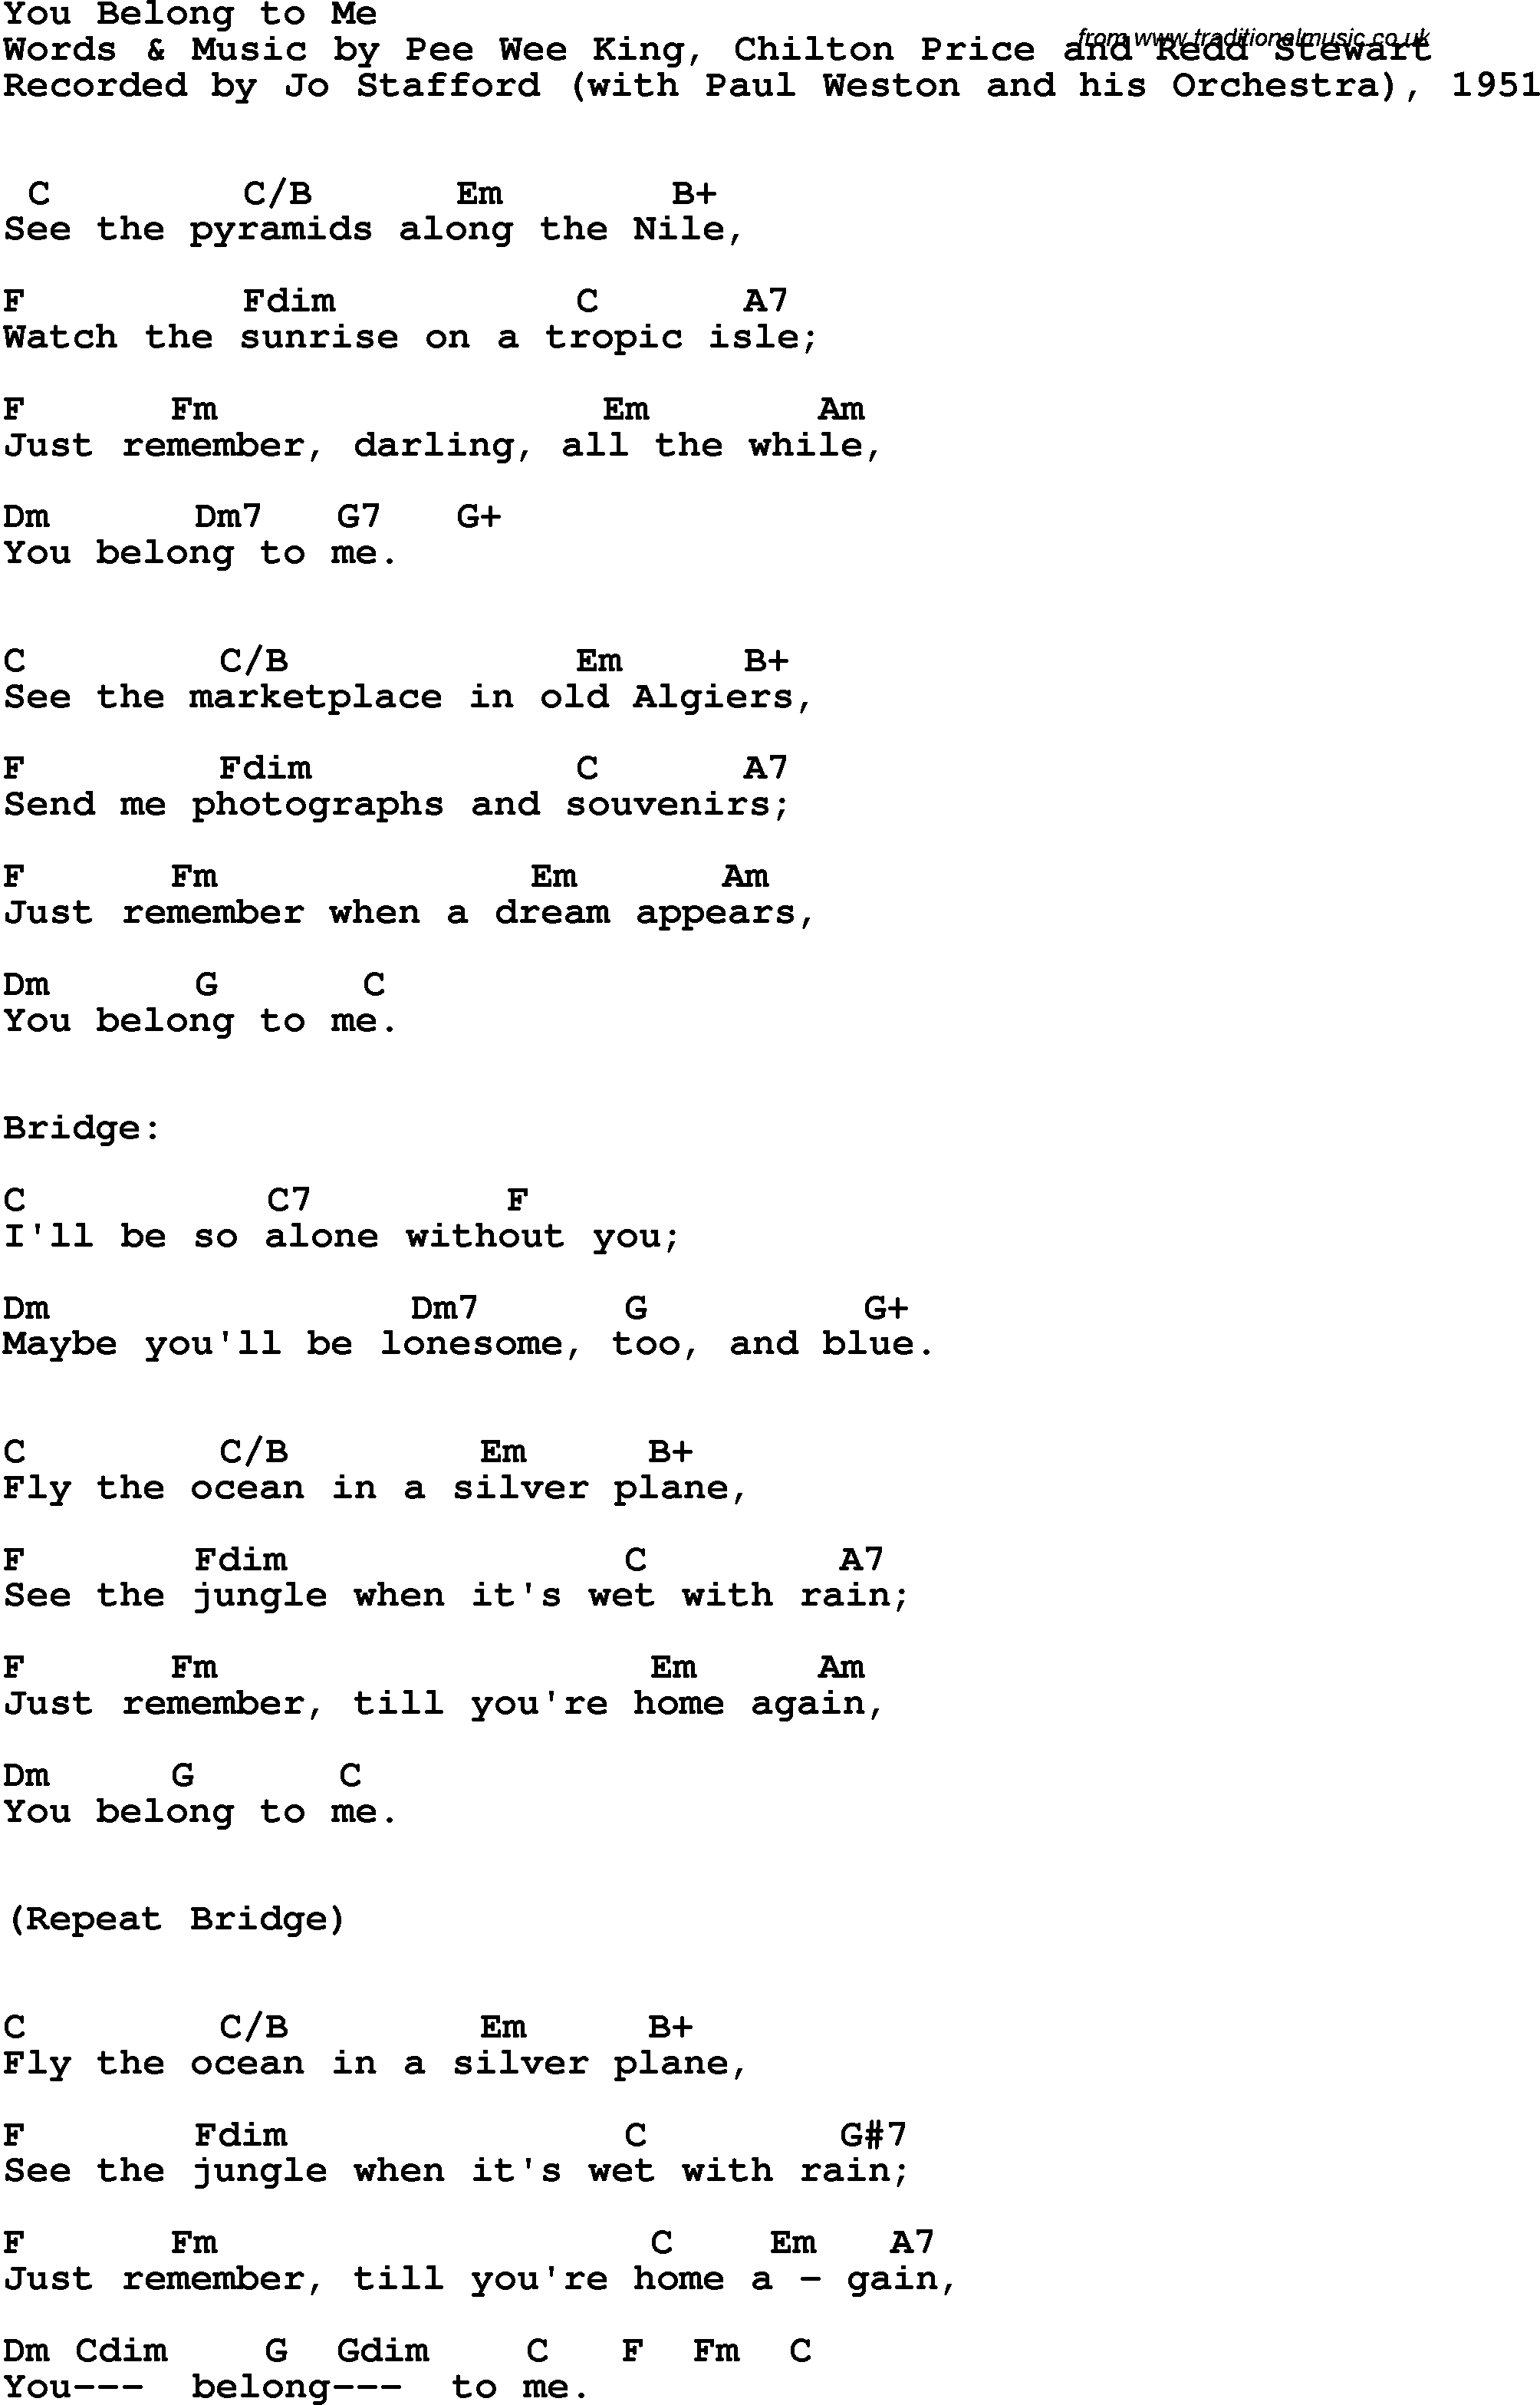 You Belong With Me Chords Song Lyrics With Guitar Chords For You Belong To Me Jo Stafford 1952